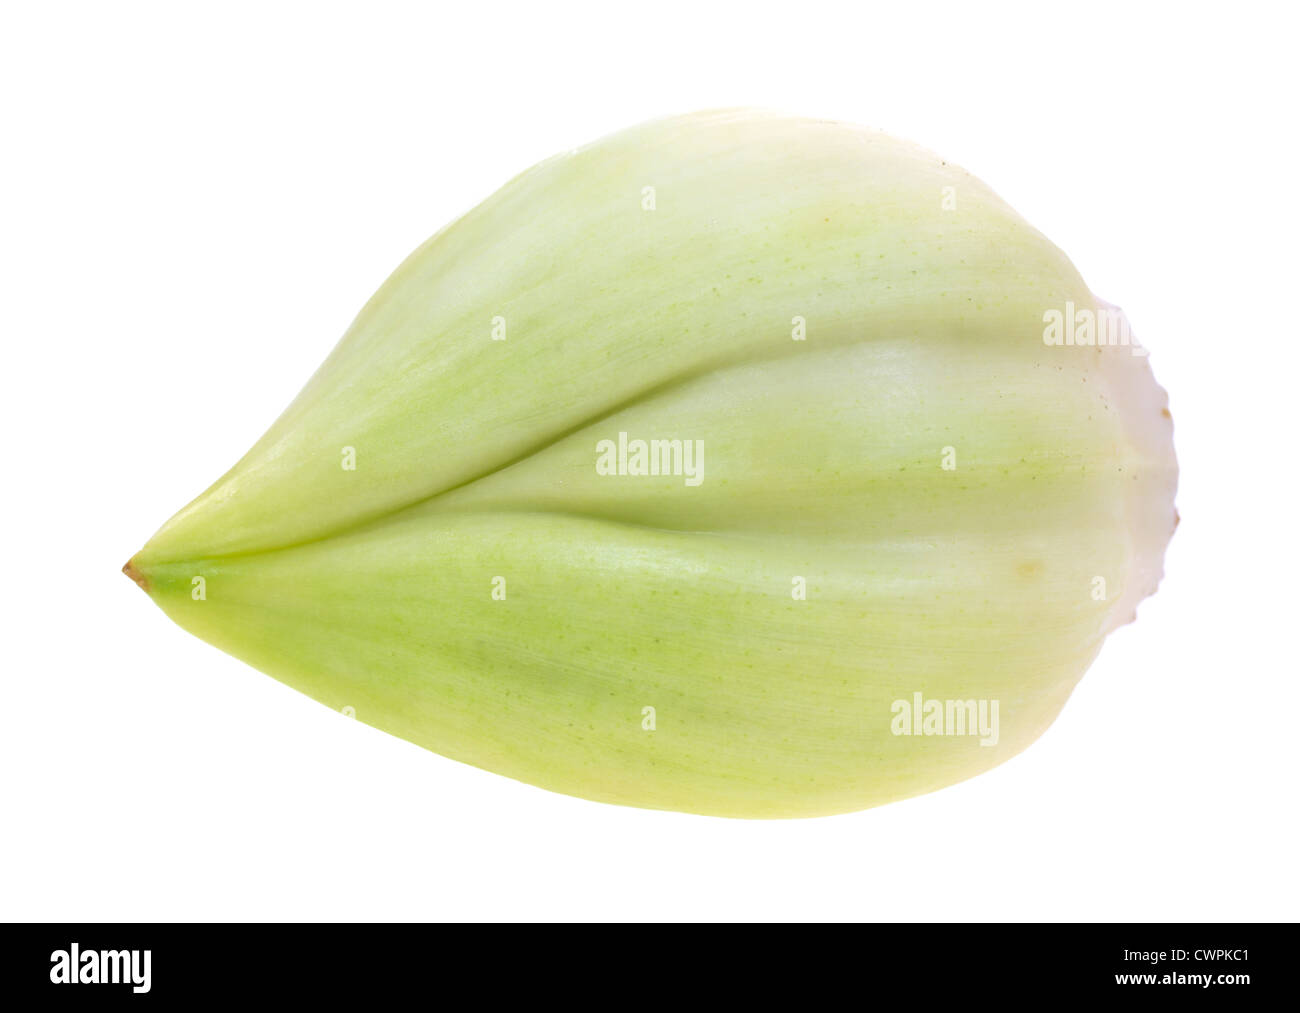 A single large elephant garlic clove on a white background. - Stock Image